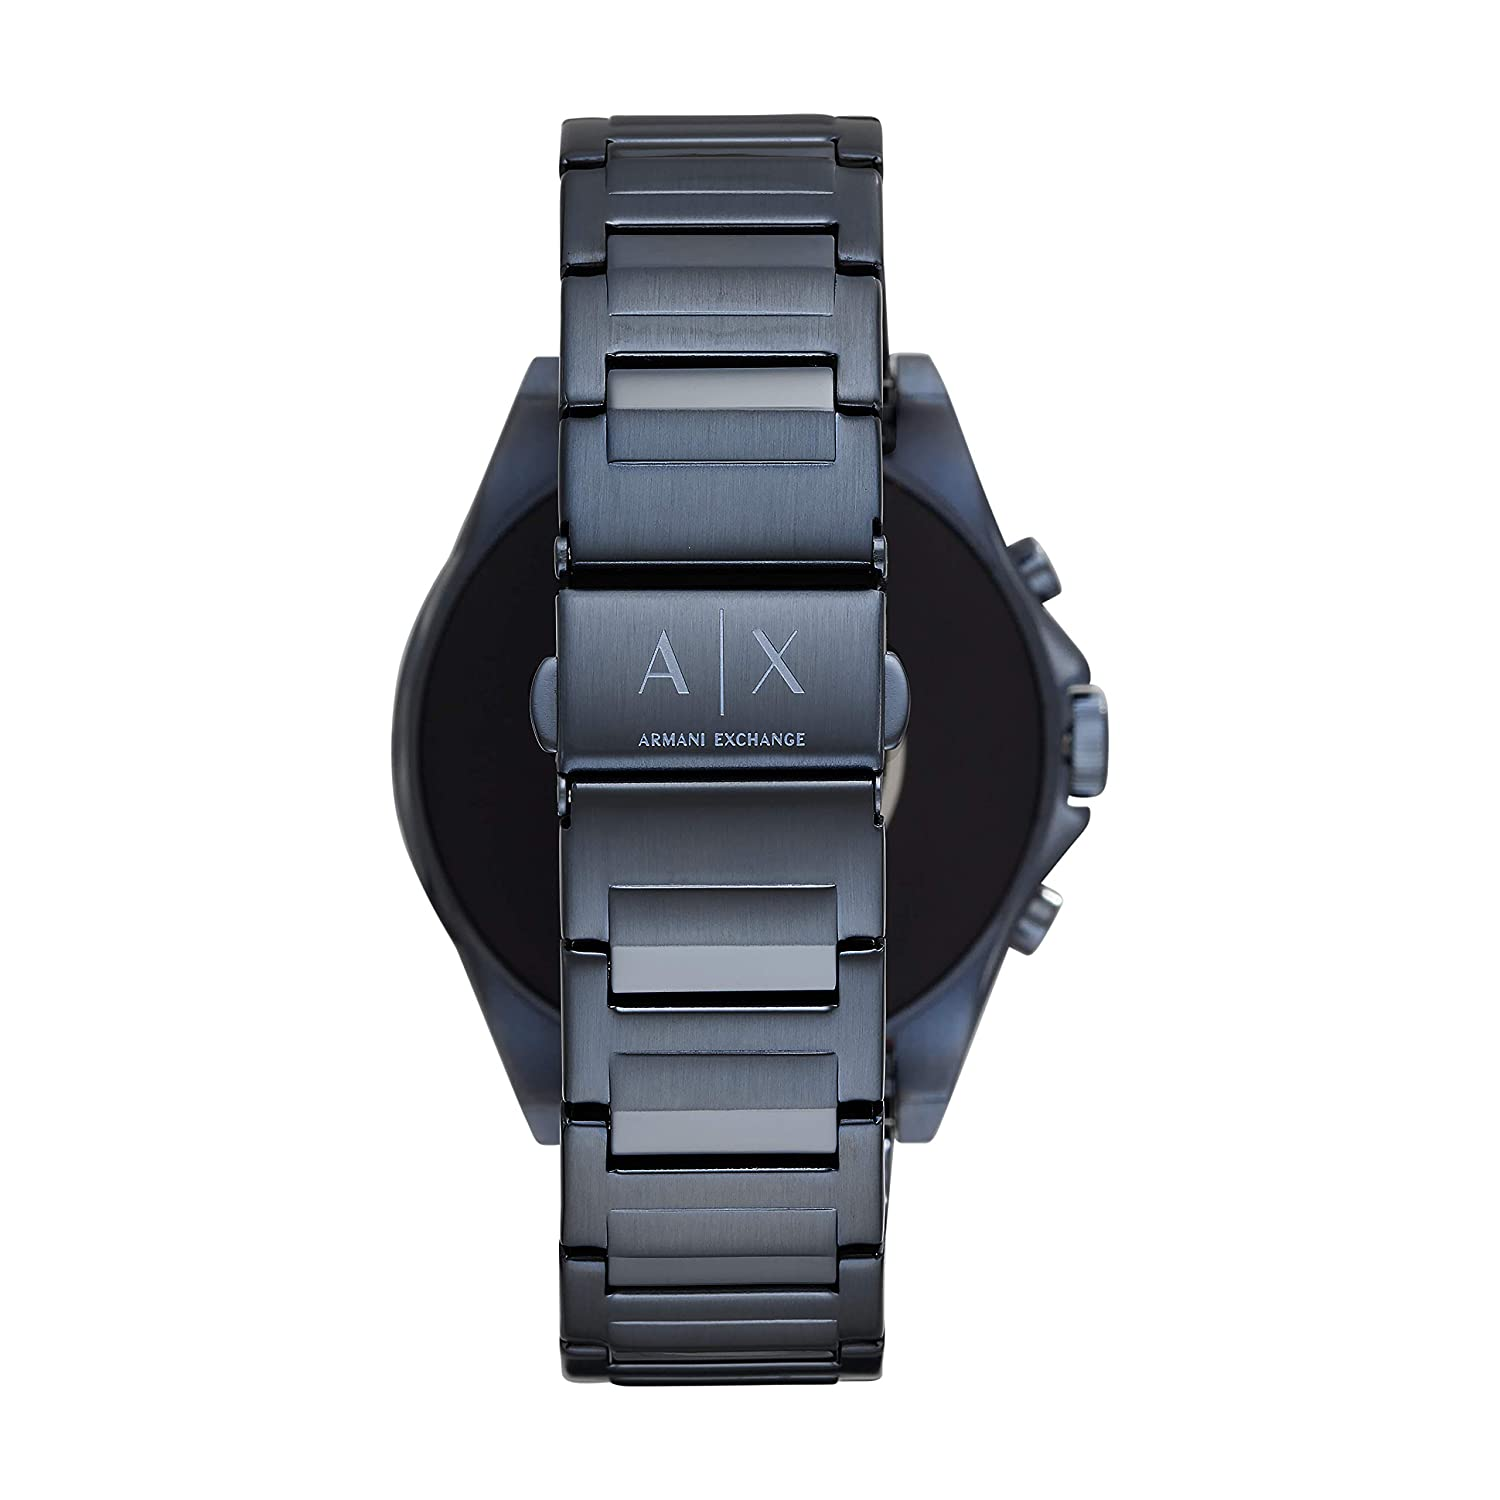 71de51adb2 Amazon.com: Armani Exchange Men's Smartwatch Touchscreen Watch with  Stainless-Steel-Plated Strap, Blue, 22 (Model: AXT2003): Watches